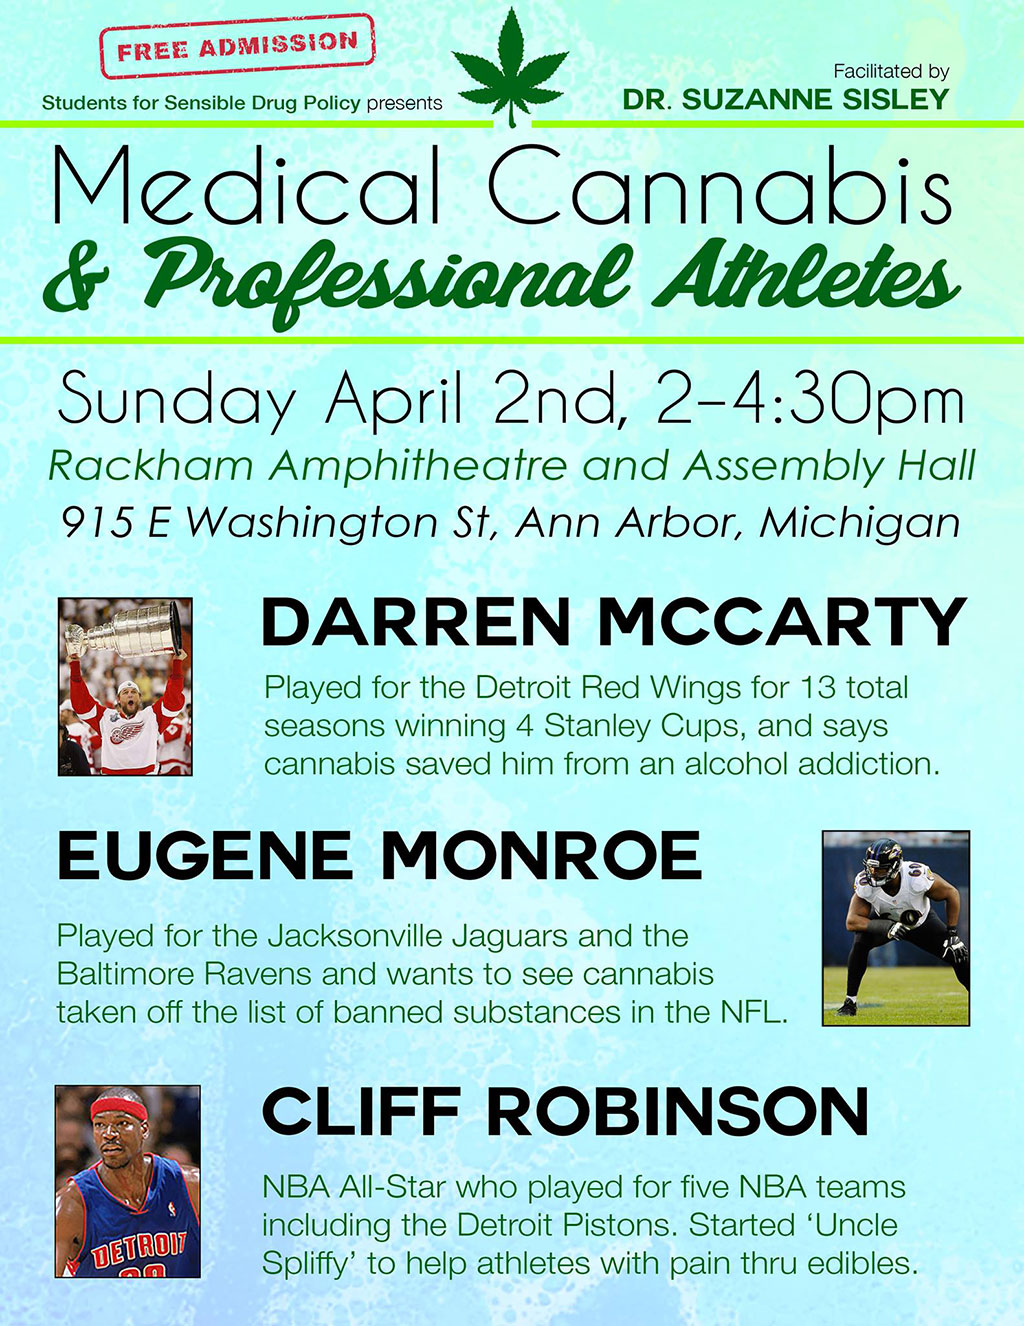 Medical Cannabis Professional Athletes - Darren McCarty, Eugene Monroe, Cliff Robinson